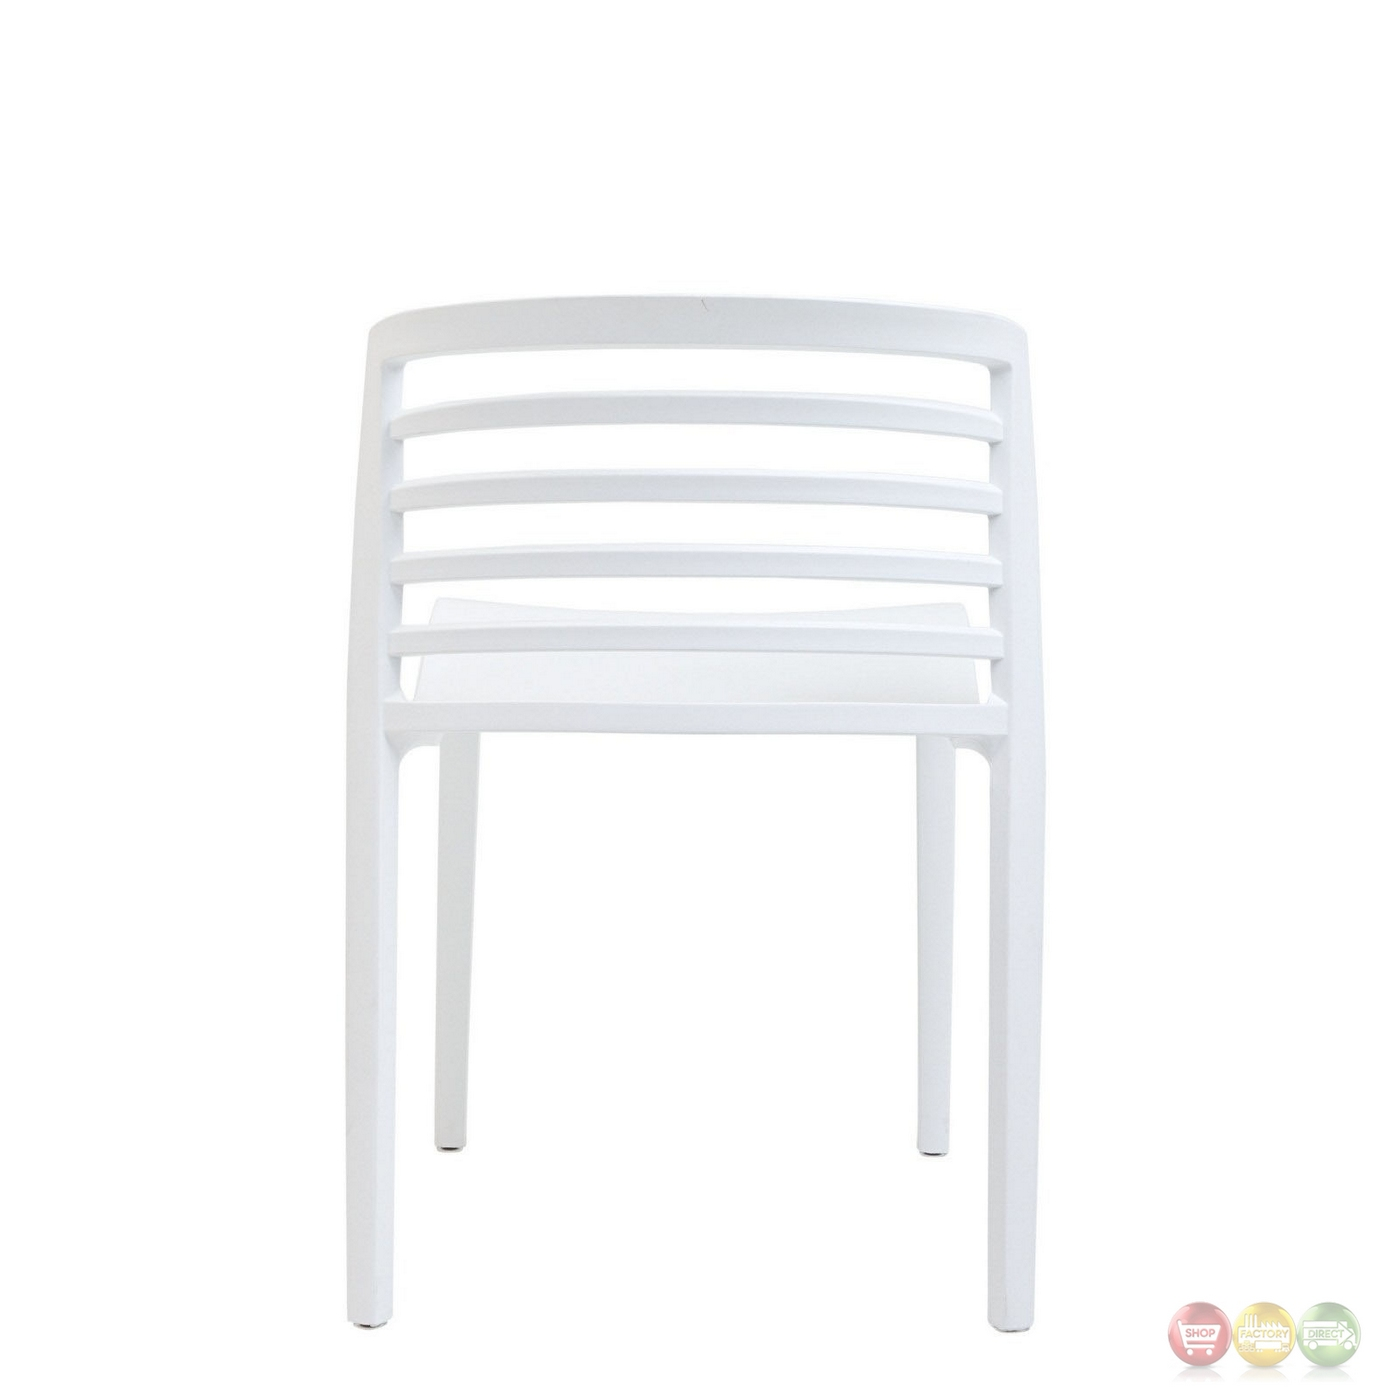 white multi purpose salon chair high 3 months curvy modern molded plastic side